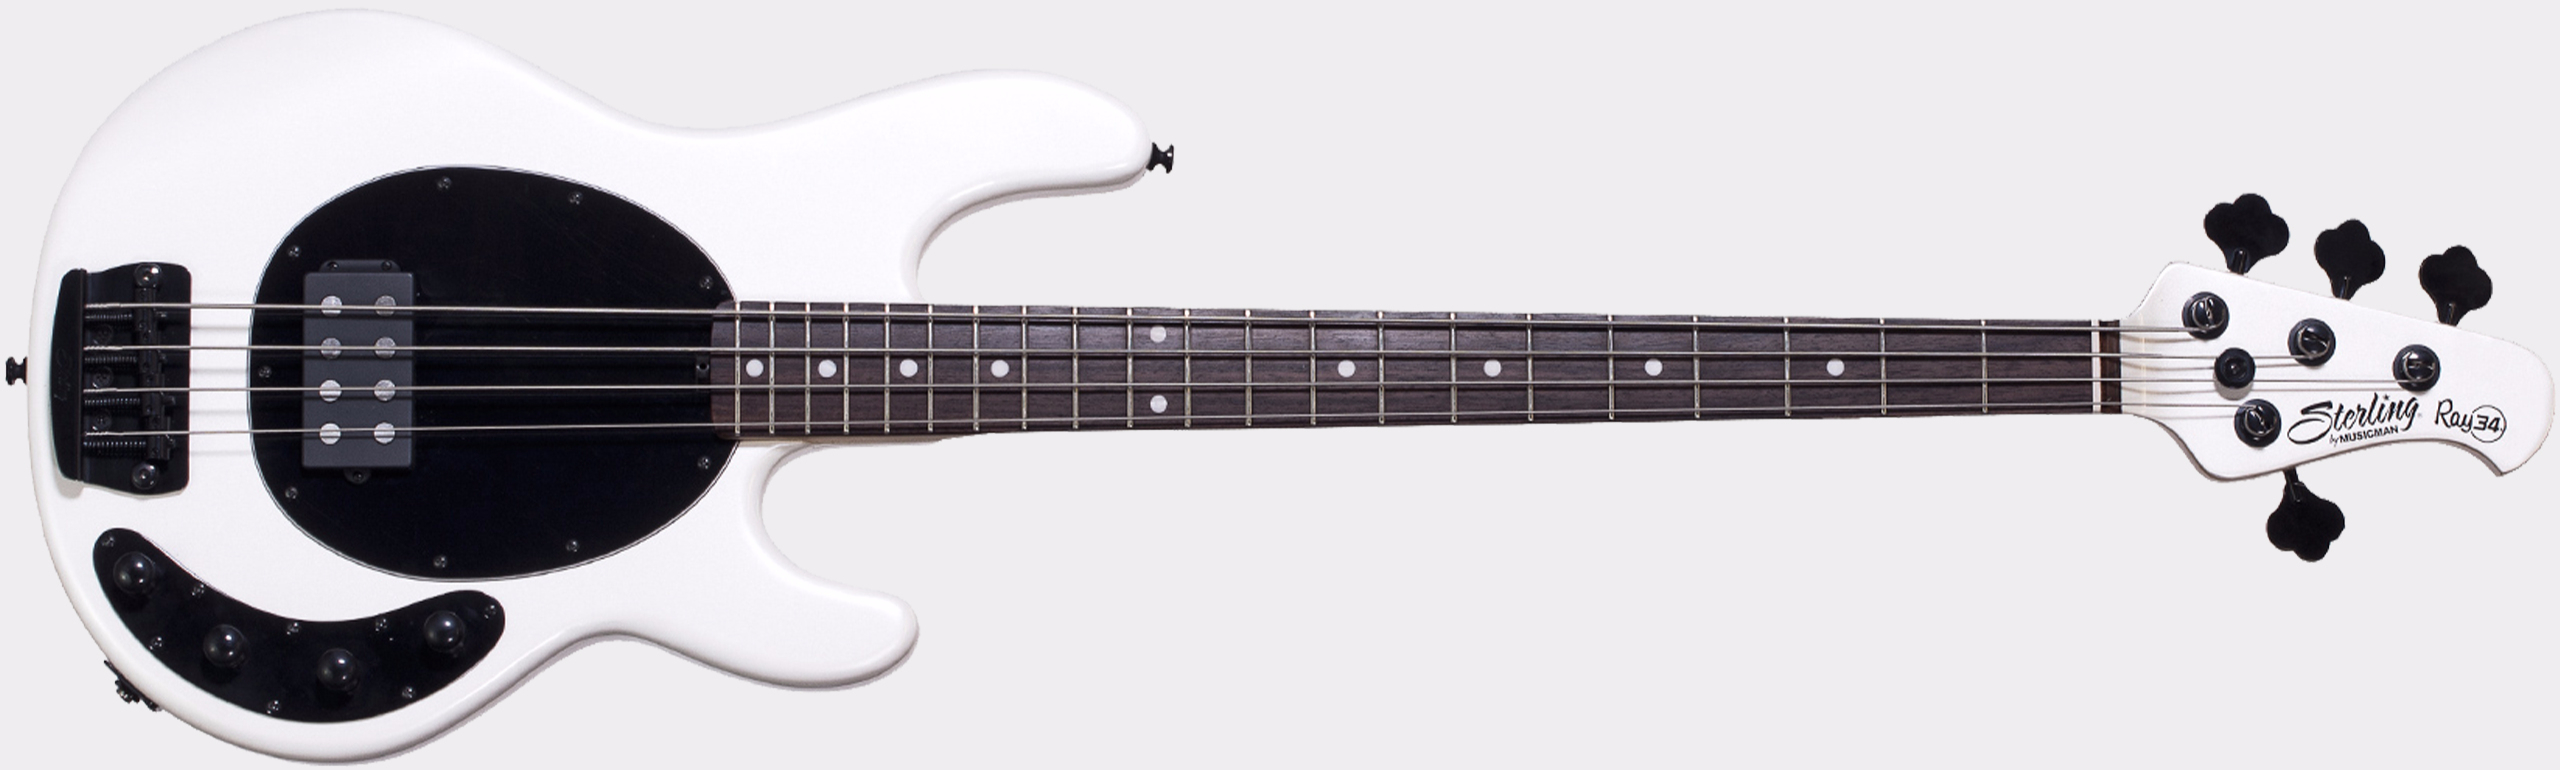 STERLING BY MUSIC MAN Ray34 RW Pearl White